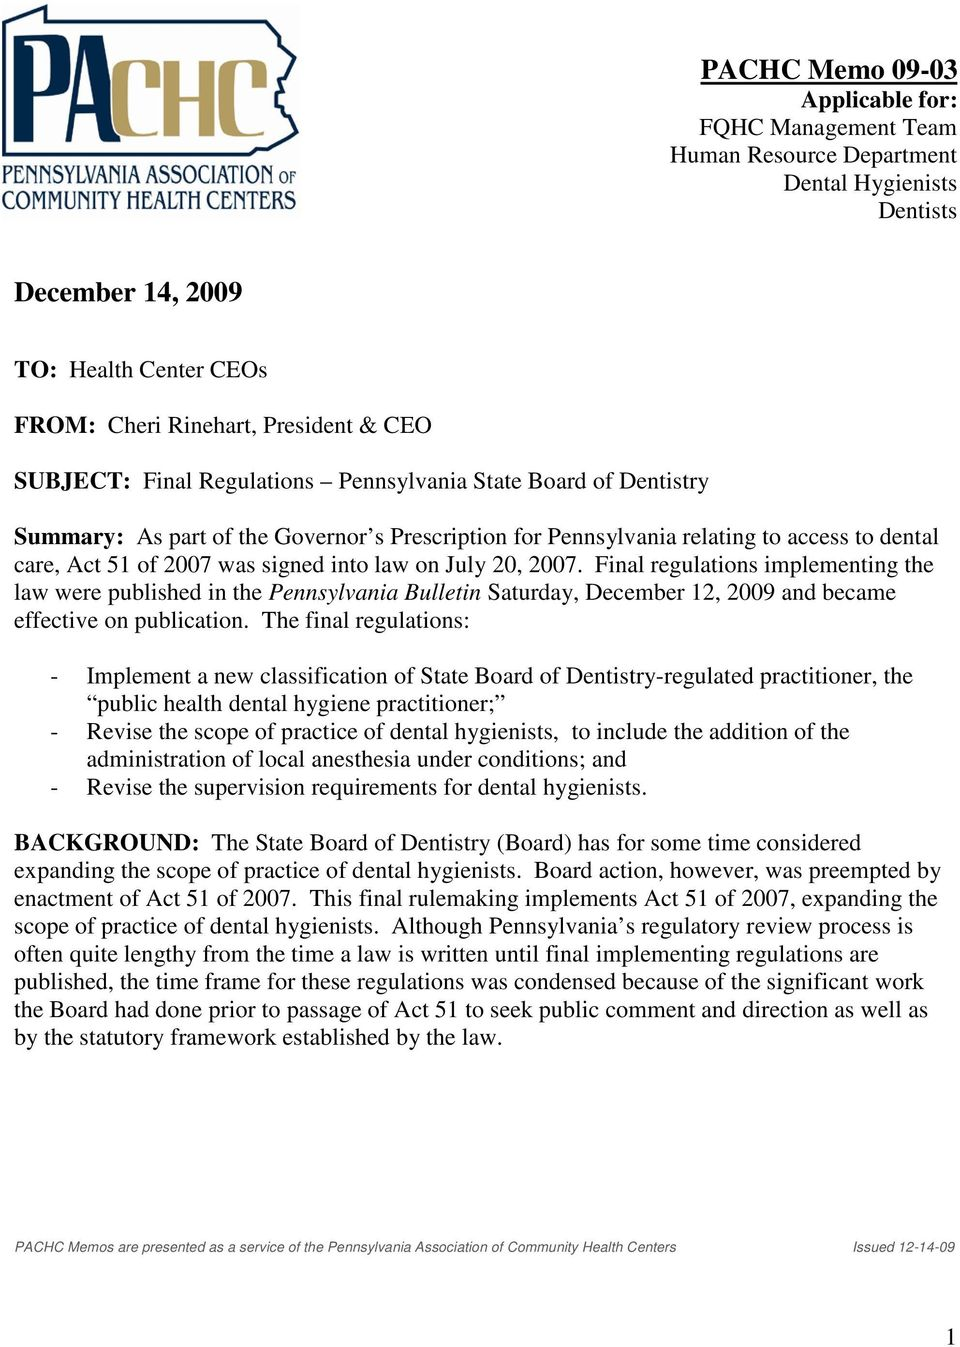 20, 2007. Final regulations implementing the law were published in the Pennsylvania Bulletin Saturday, December 12, 2009 and became effective on publication.